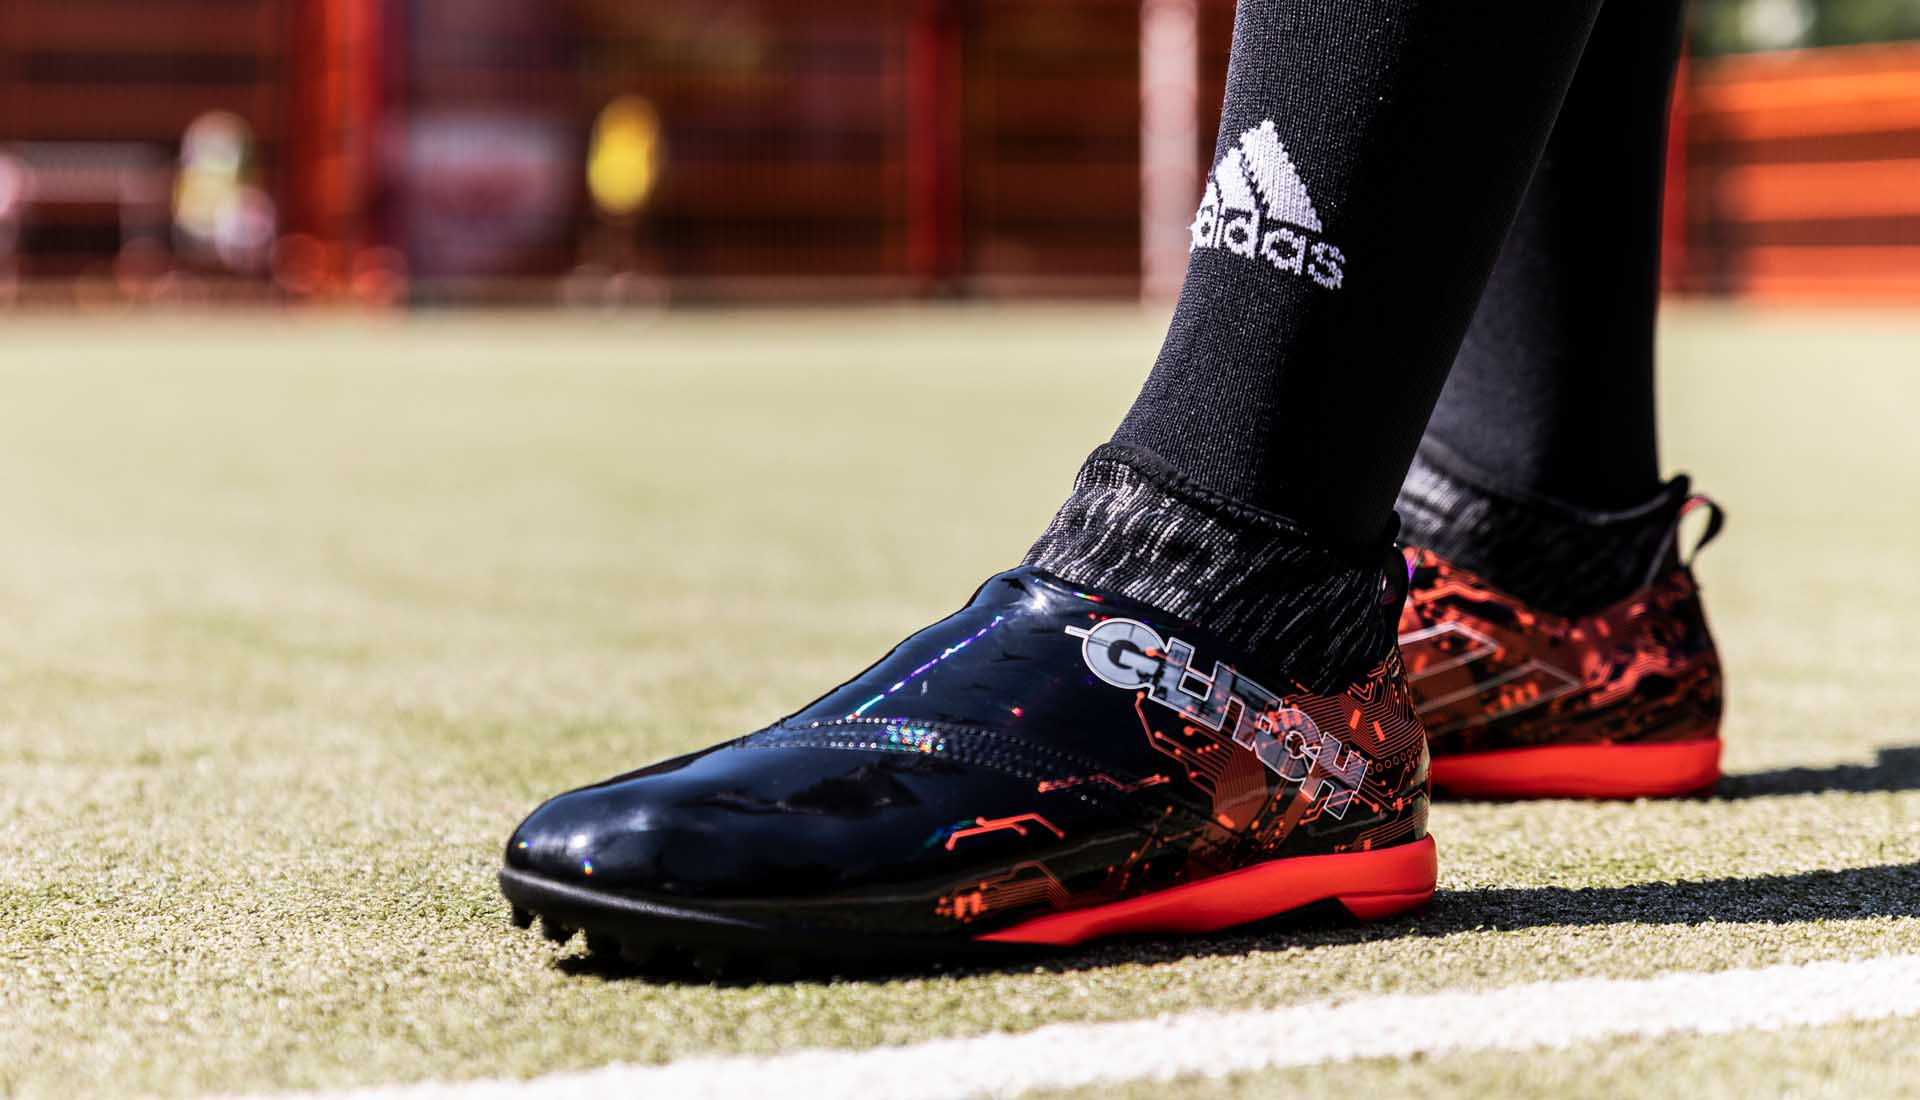 adidas Bring An End To The Glitch Series - SoccerBible